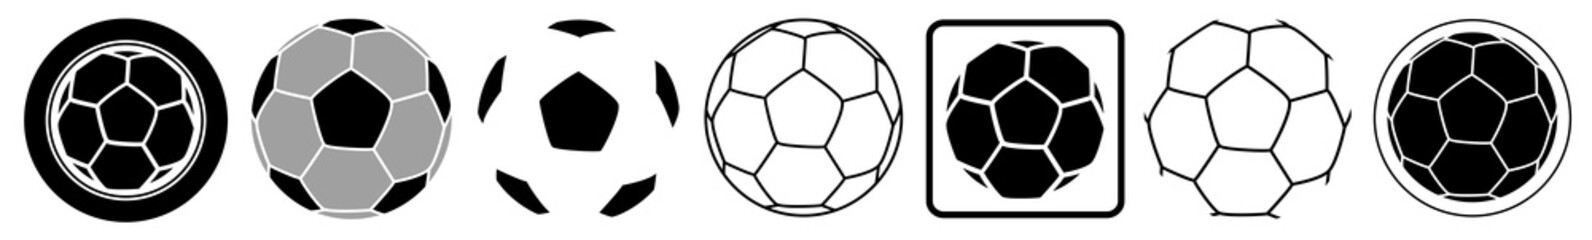 Ball | Emblem | Logo | Variationen